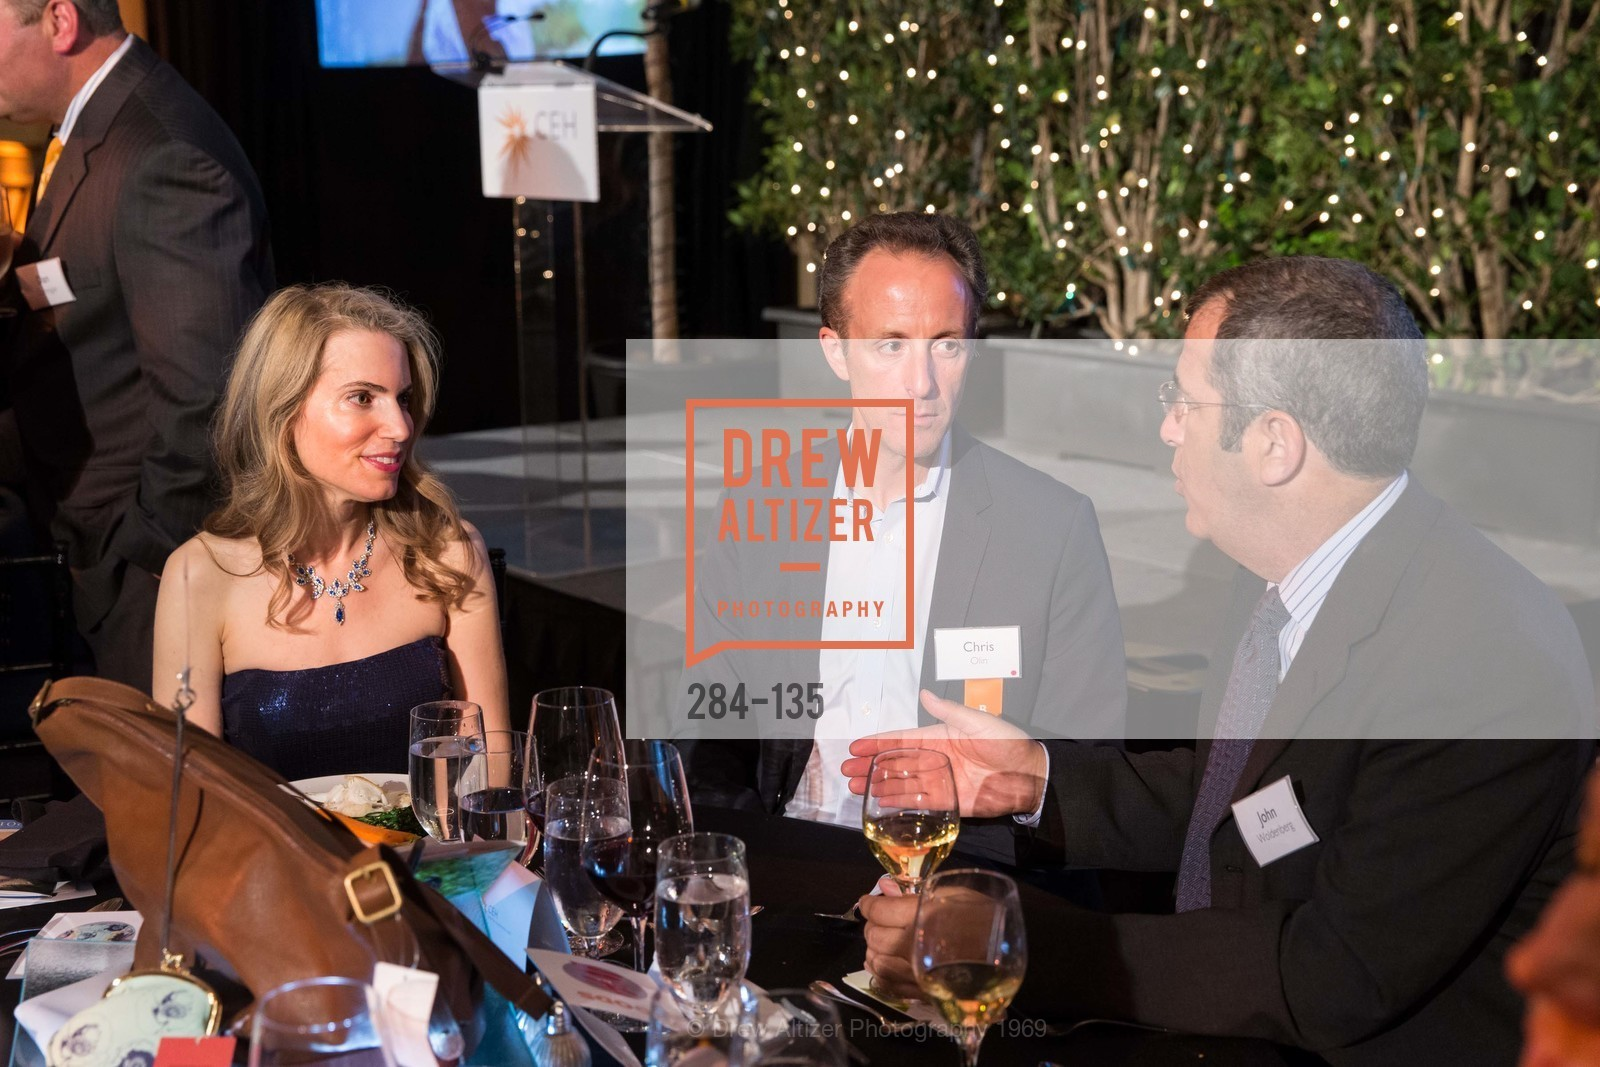 Nadine Weil, Chris Olin, John Woldenberg, Center for Environmental Health  2015 Gala, Bently Reserve, May 27th, 2015,Drew Altizer, Drew Altizer Photography, full-service agency, private events, San Francisco photographer, photographer california